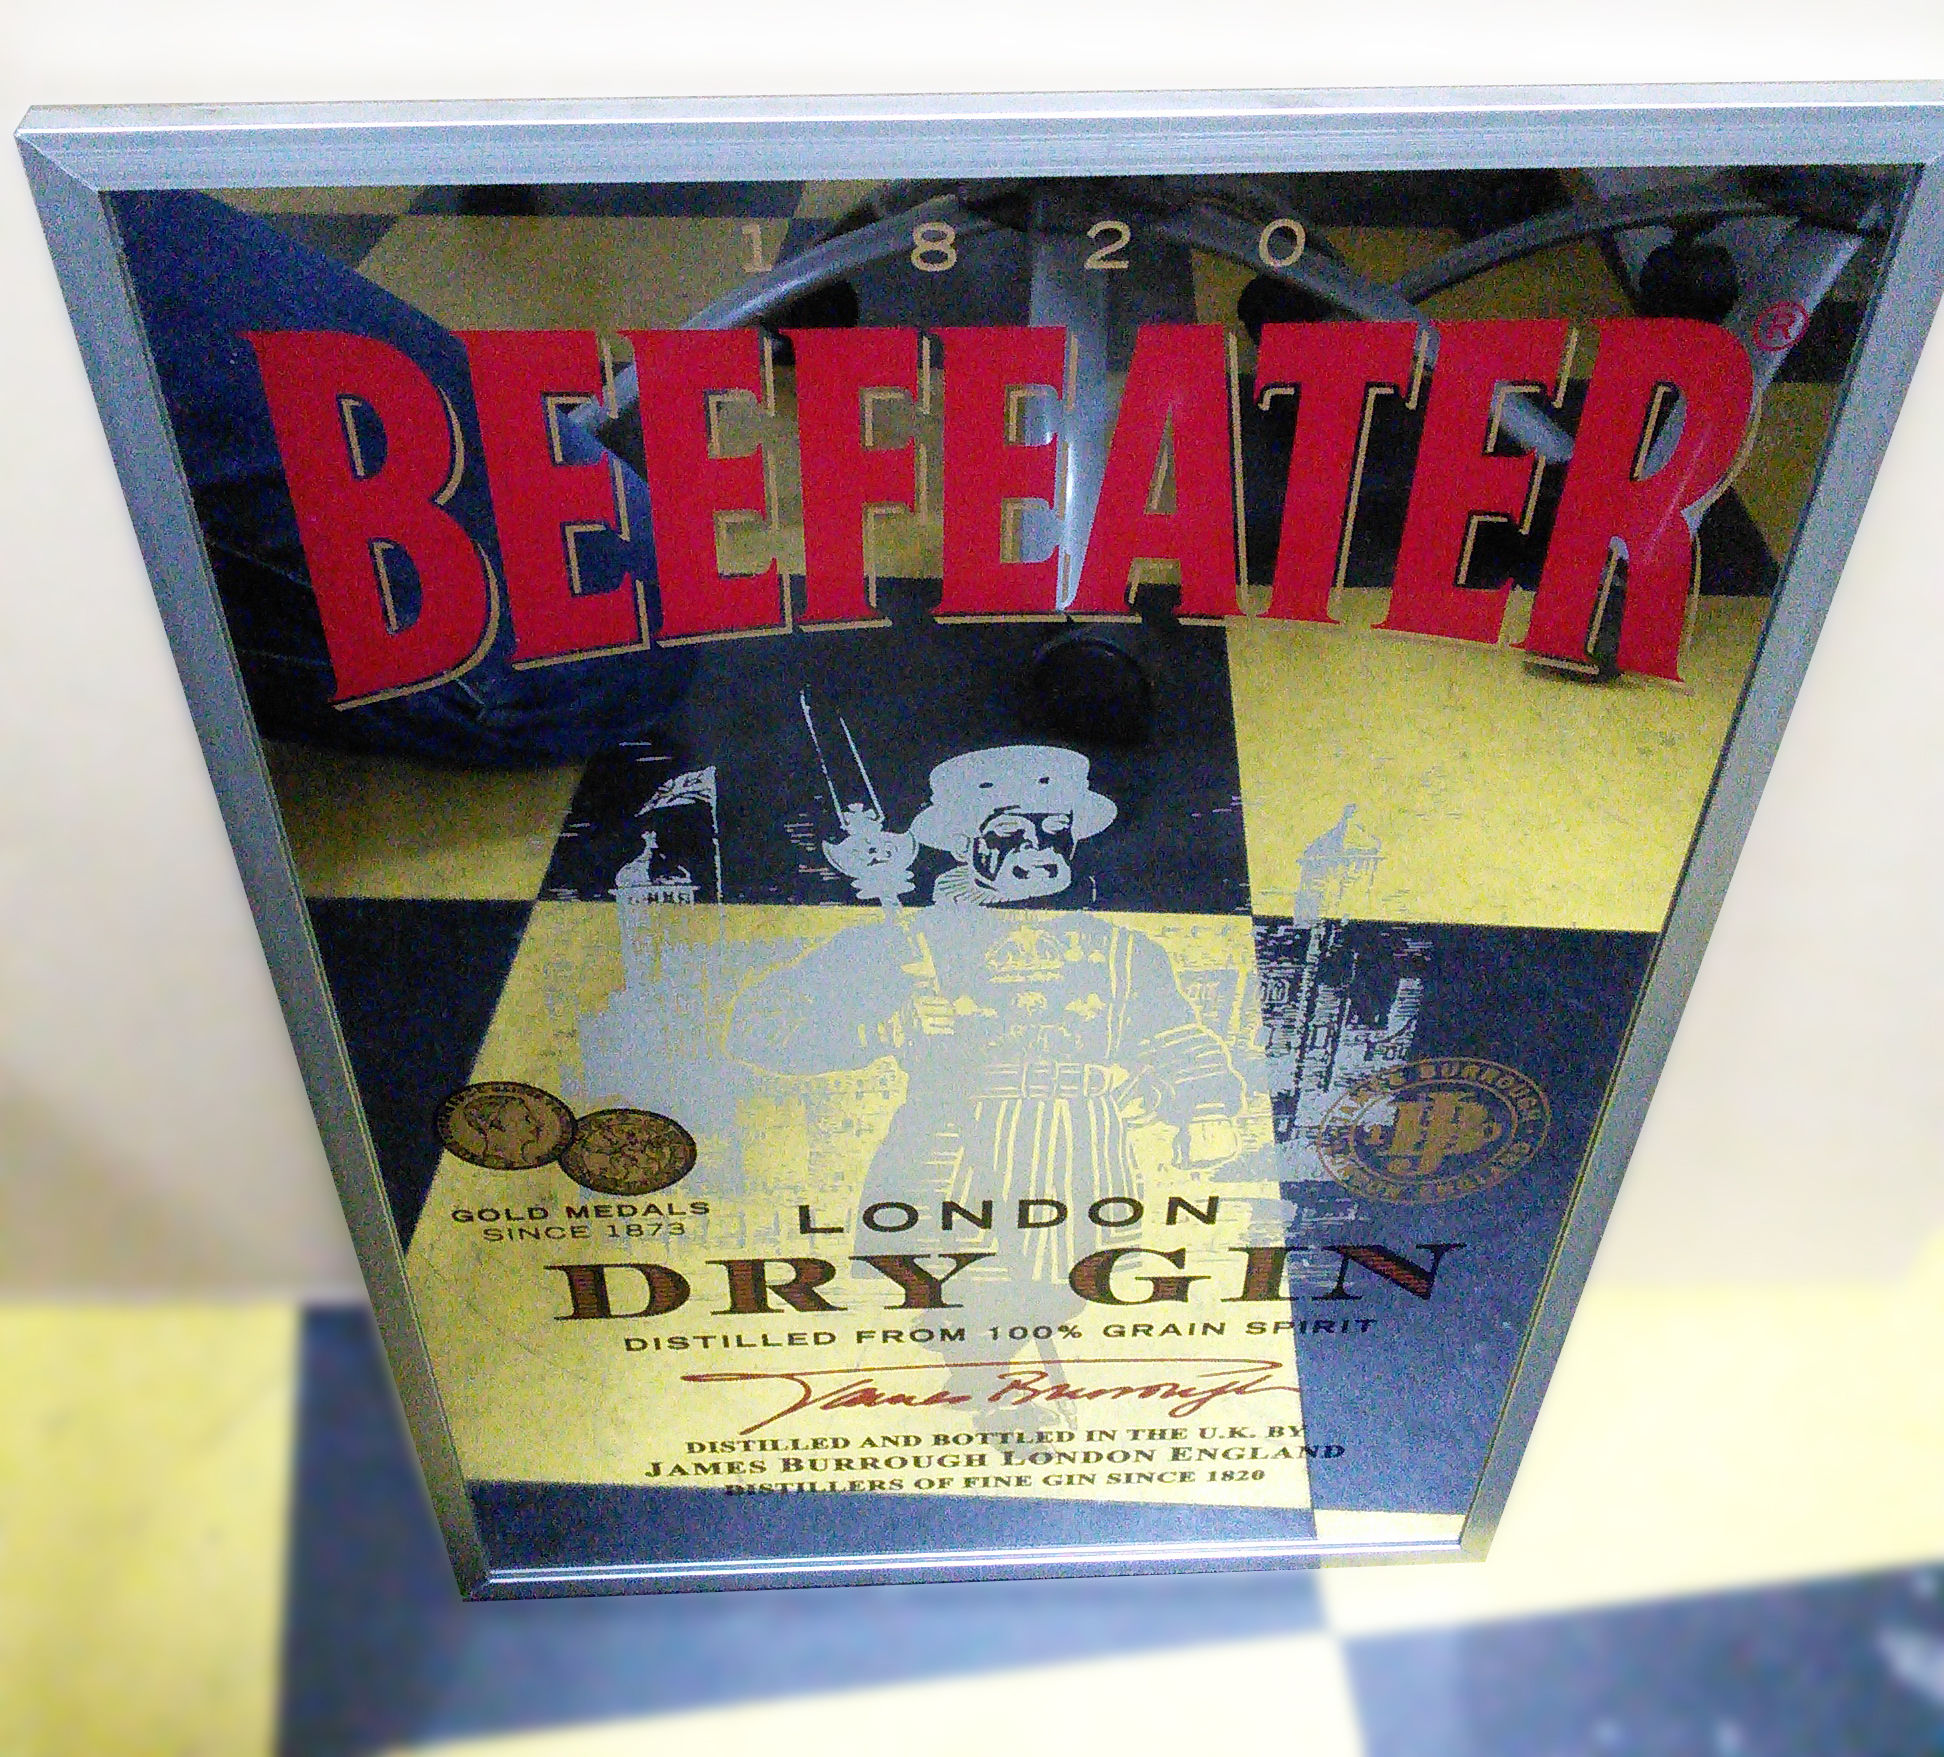 BEEFEATER パブミラー